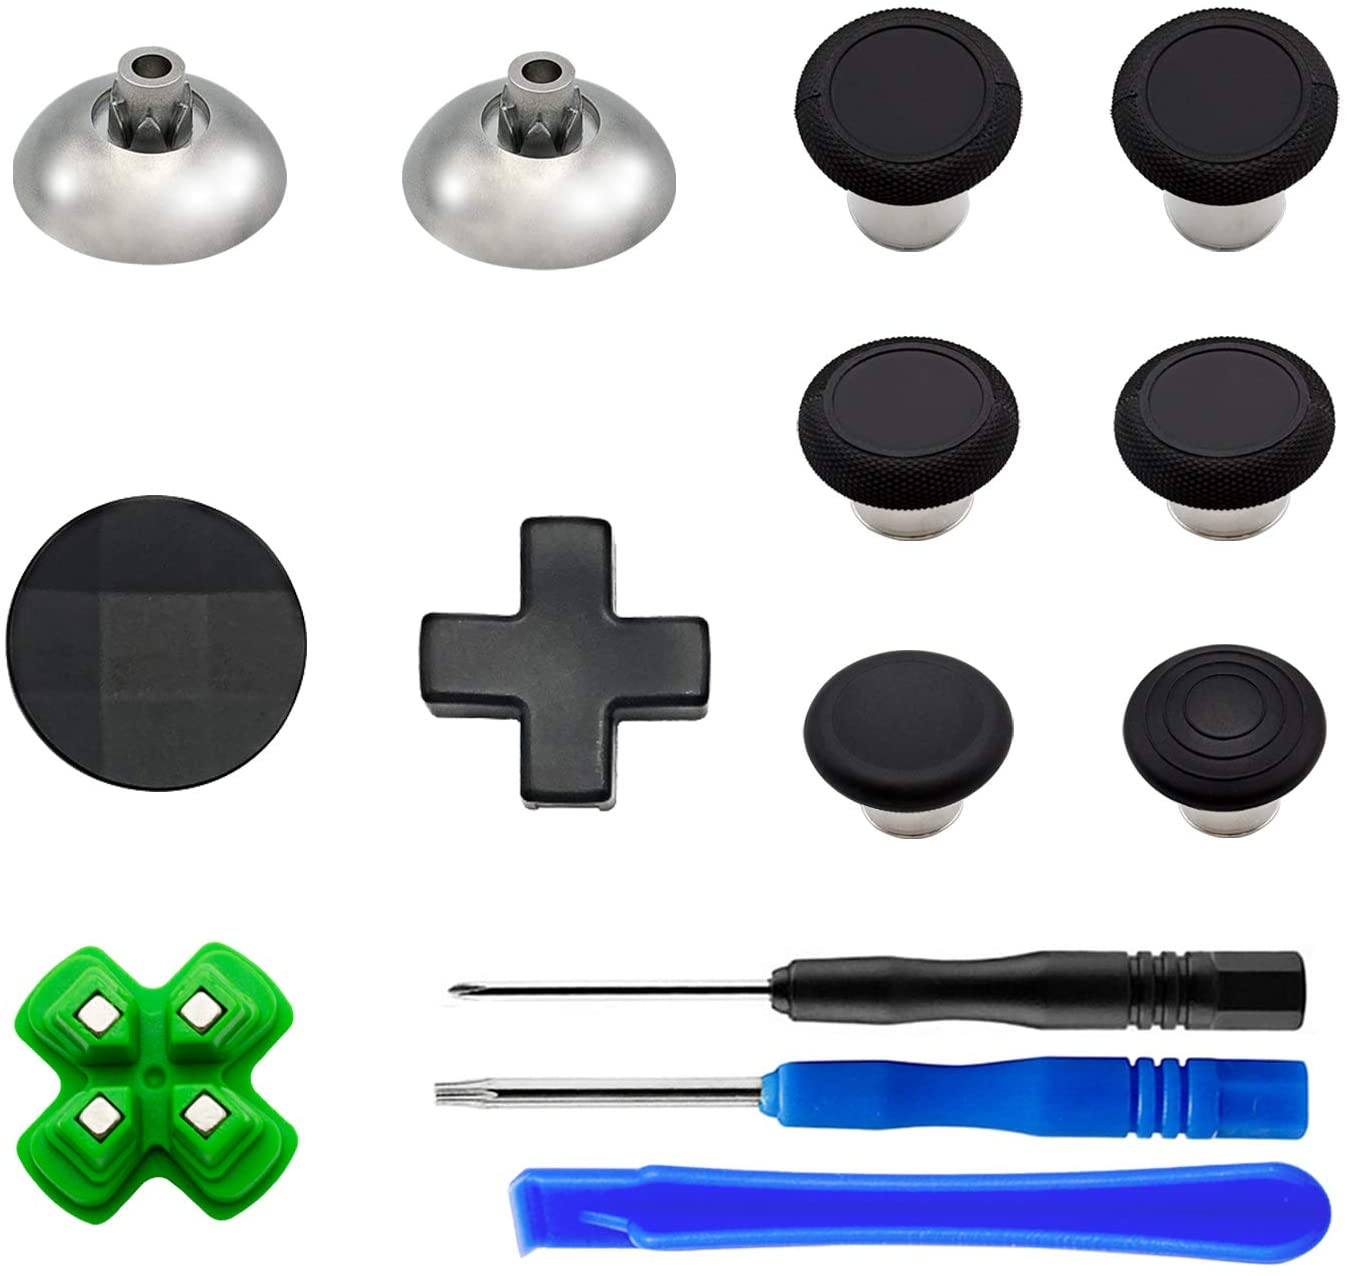 EASEGMER 11 pcs Metal Thumbsticks Magnetic Base D-Pads Replacement Parts, Swap Analog Joysticks Accessories Fit for PS4, Pro,Slim Controllers (Black)